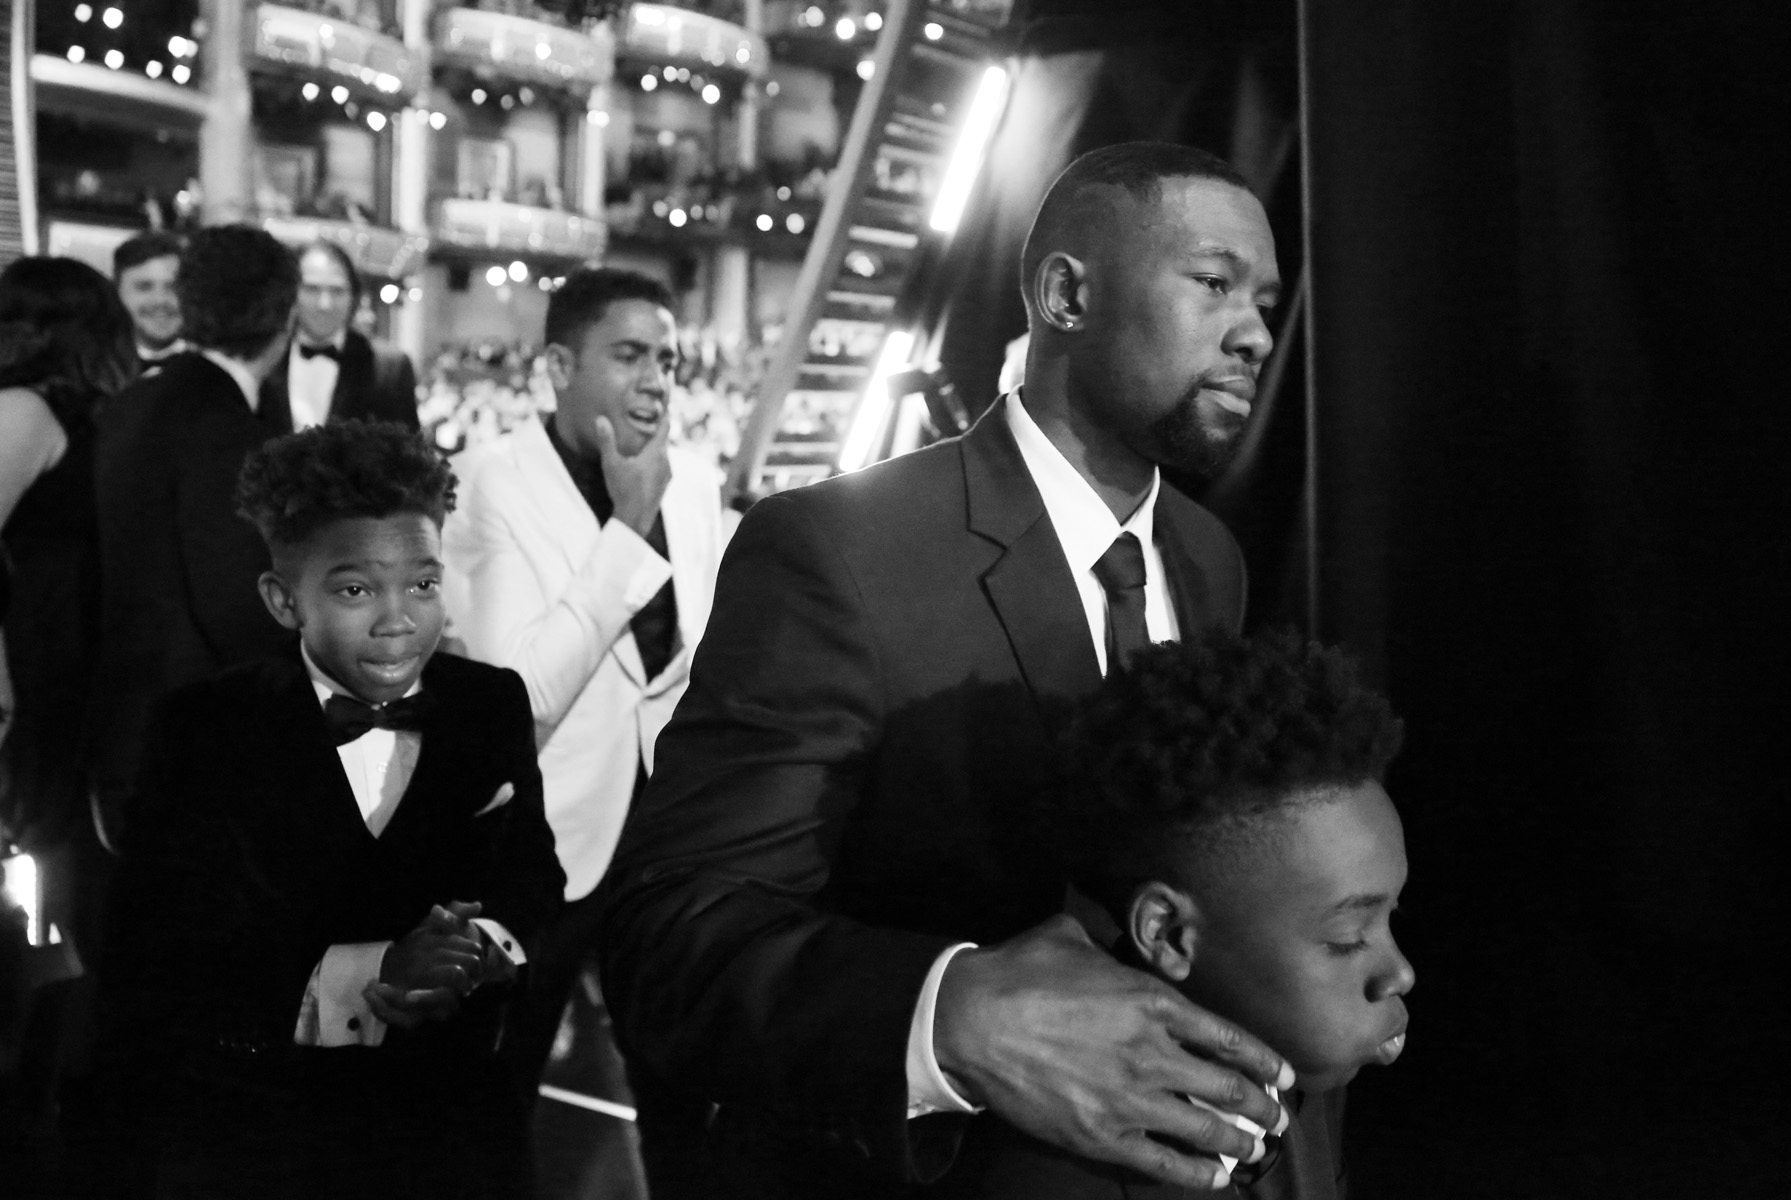 Jaden Piner, from left, Jharrel Jerome, Trevante Rhodes, and Alex R. Hibbert, winners of the award for best picture for {quote}Moonlight,{quote} walk backstage at the Oscars on Sunday, Feb. 26, 2017, at the Dolby Theatre in Los Angeles. (Photo by Matt Sayles/Invision/AP)